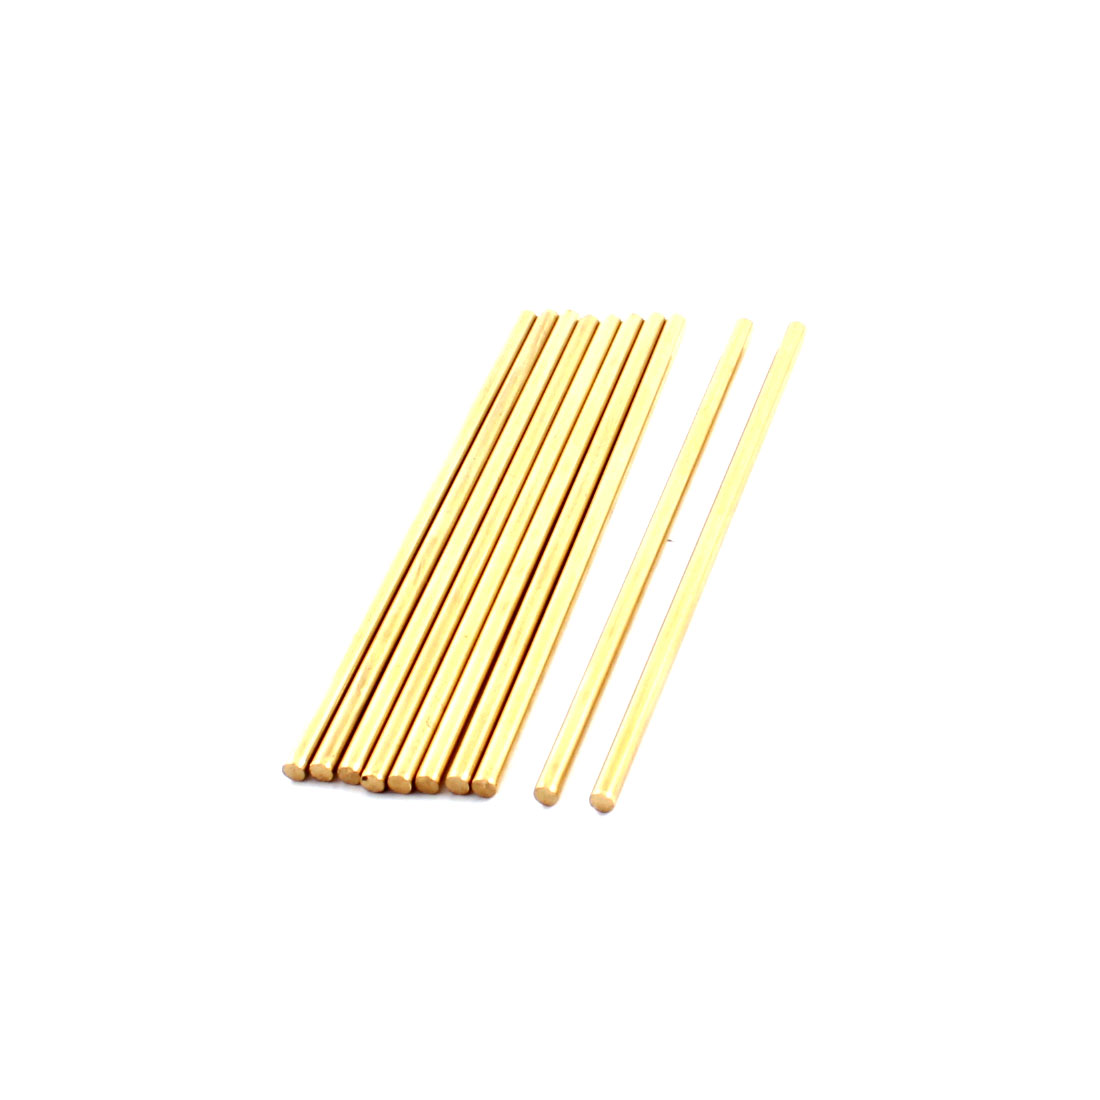 10 Pcs 3mm Dia 90mm Length Brass Solid Round Rod Bar for DIY RC Toy